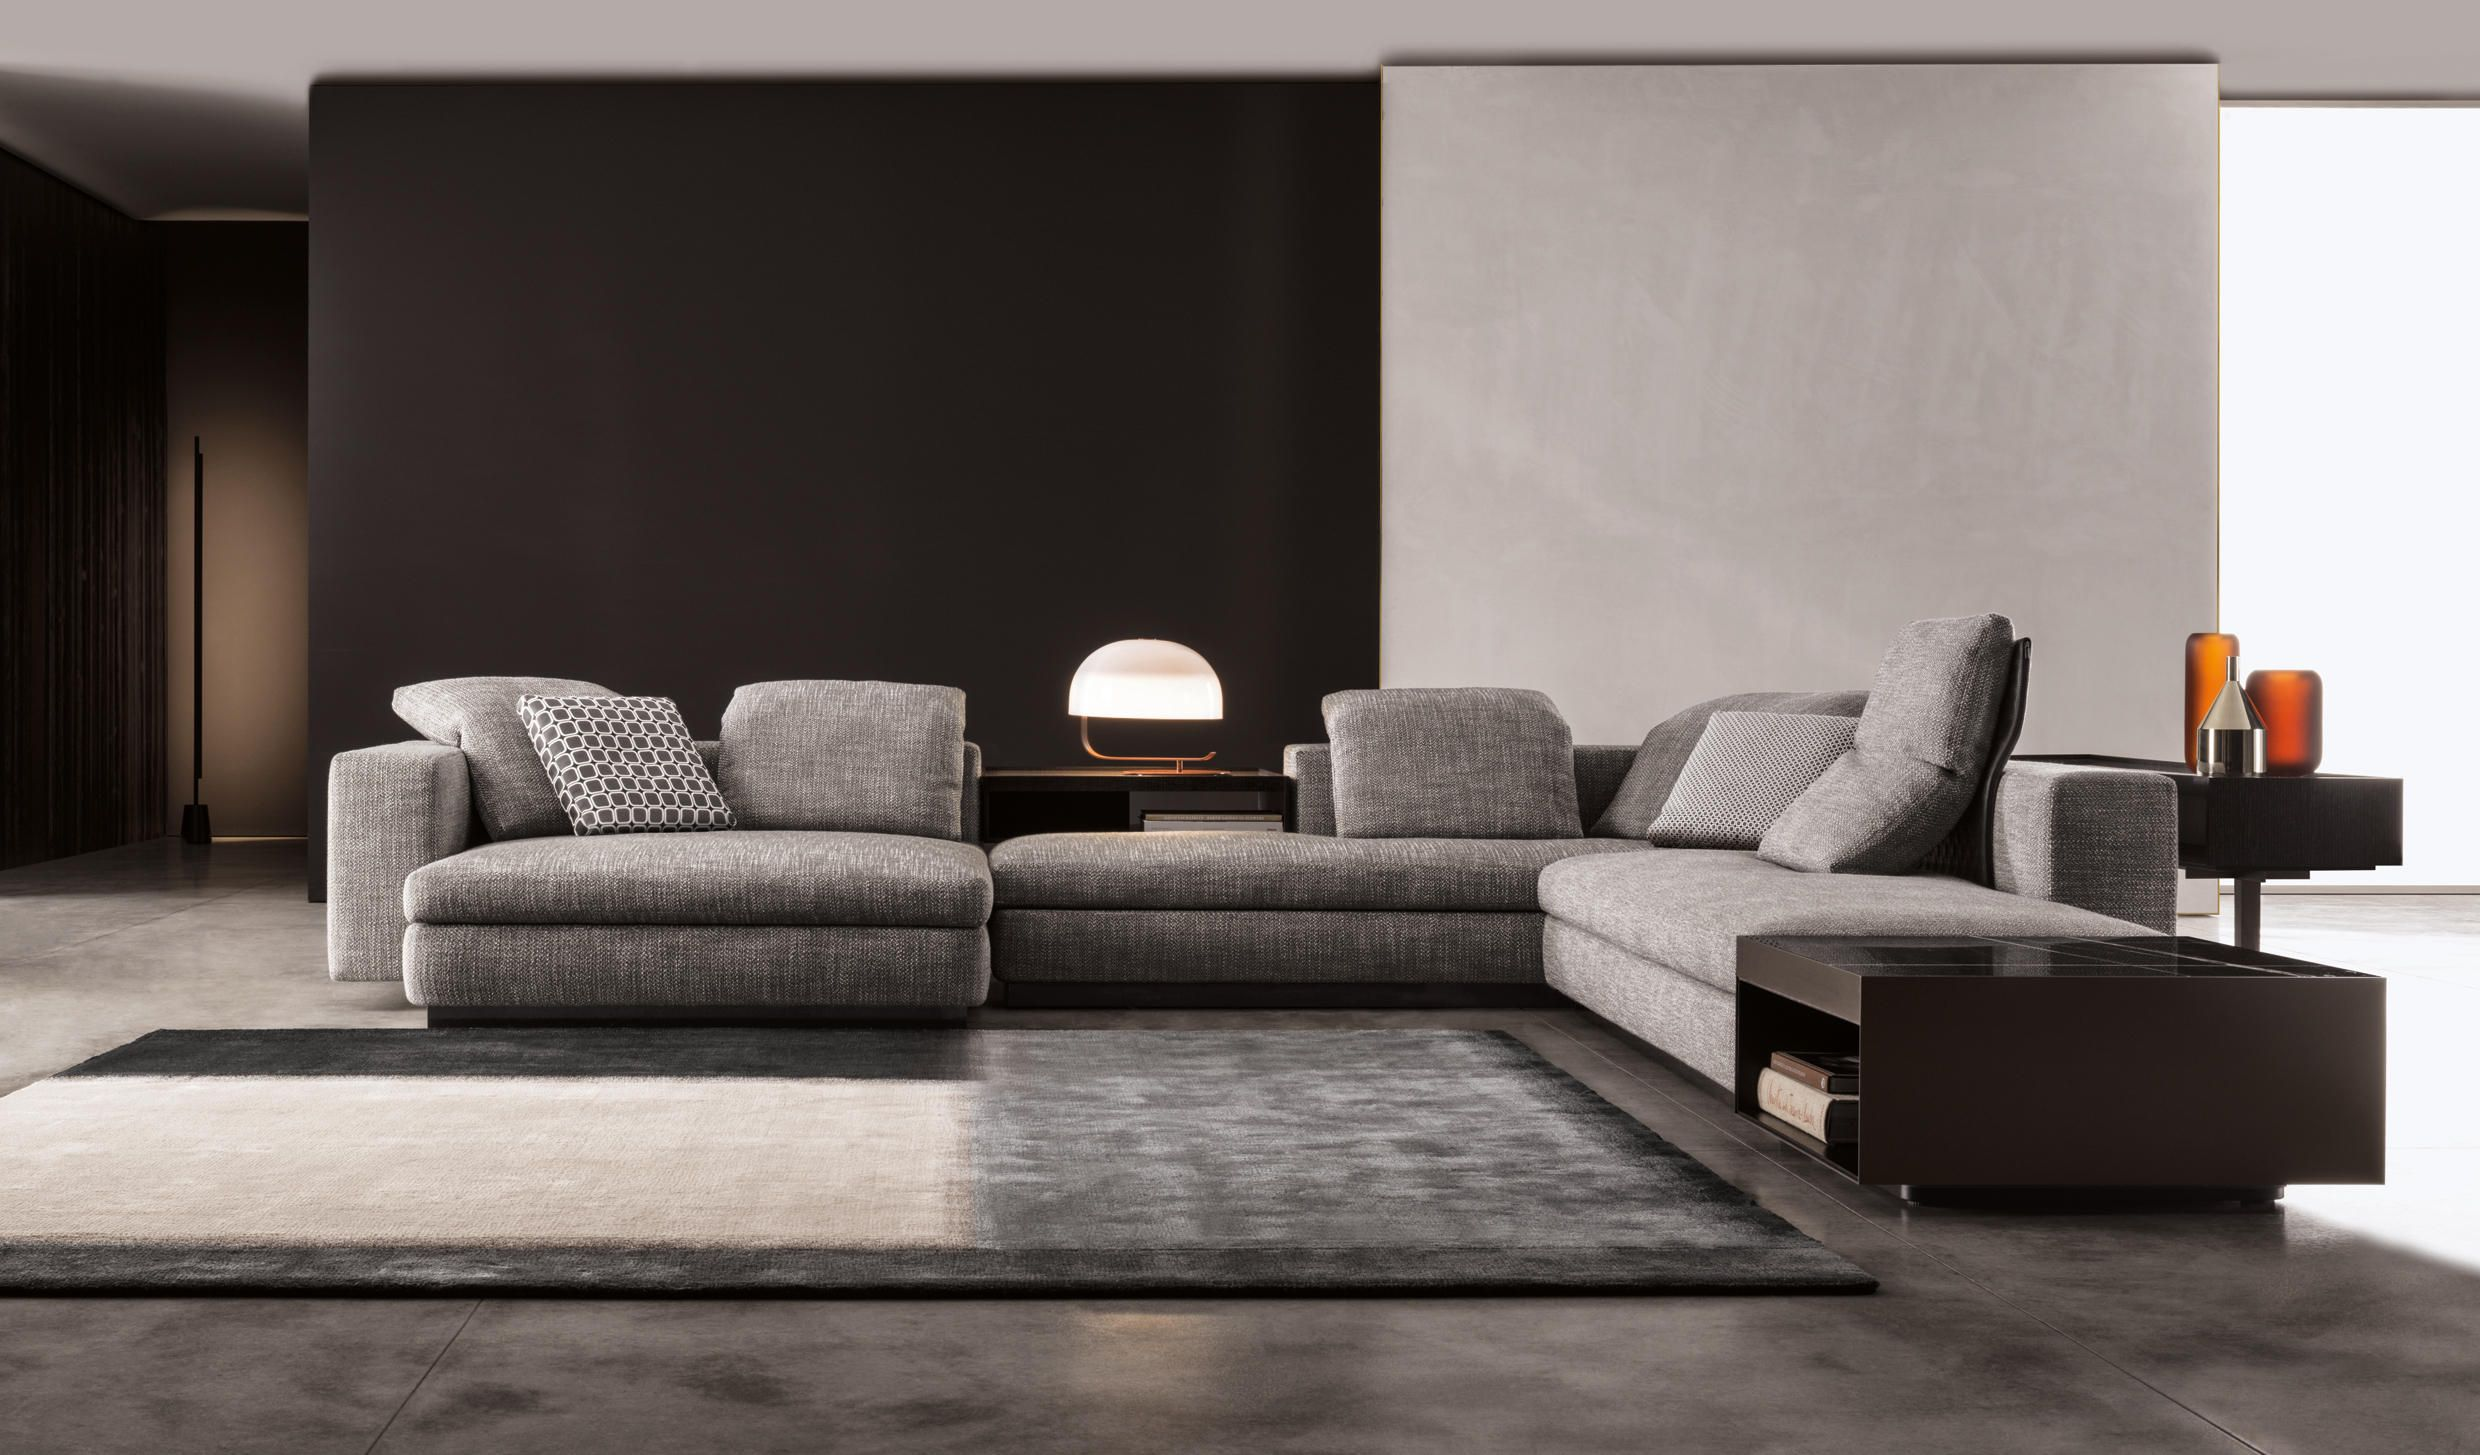 Structure In Multiply Wood Seat Suspension Is Provided By Elastic Straps With A High Rubber Couches Living Room Modern Couches Living Room Modern Living Room